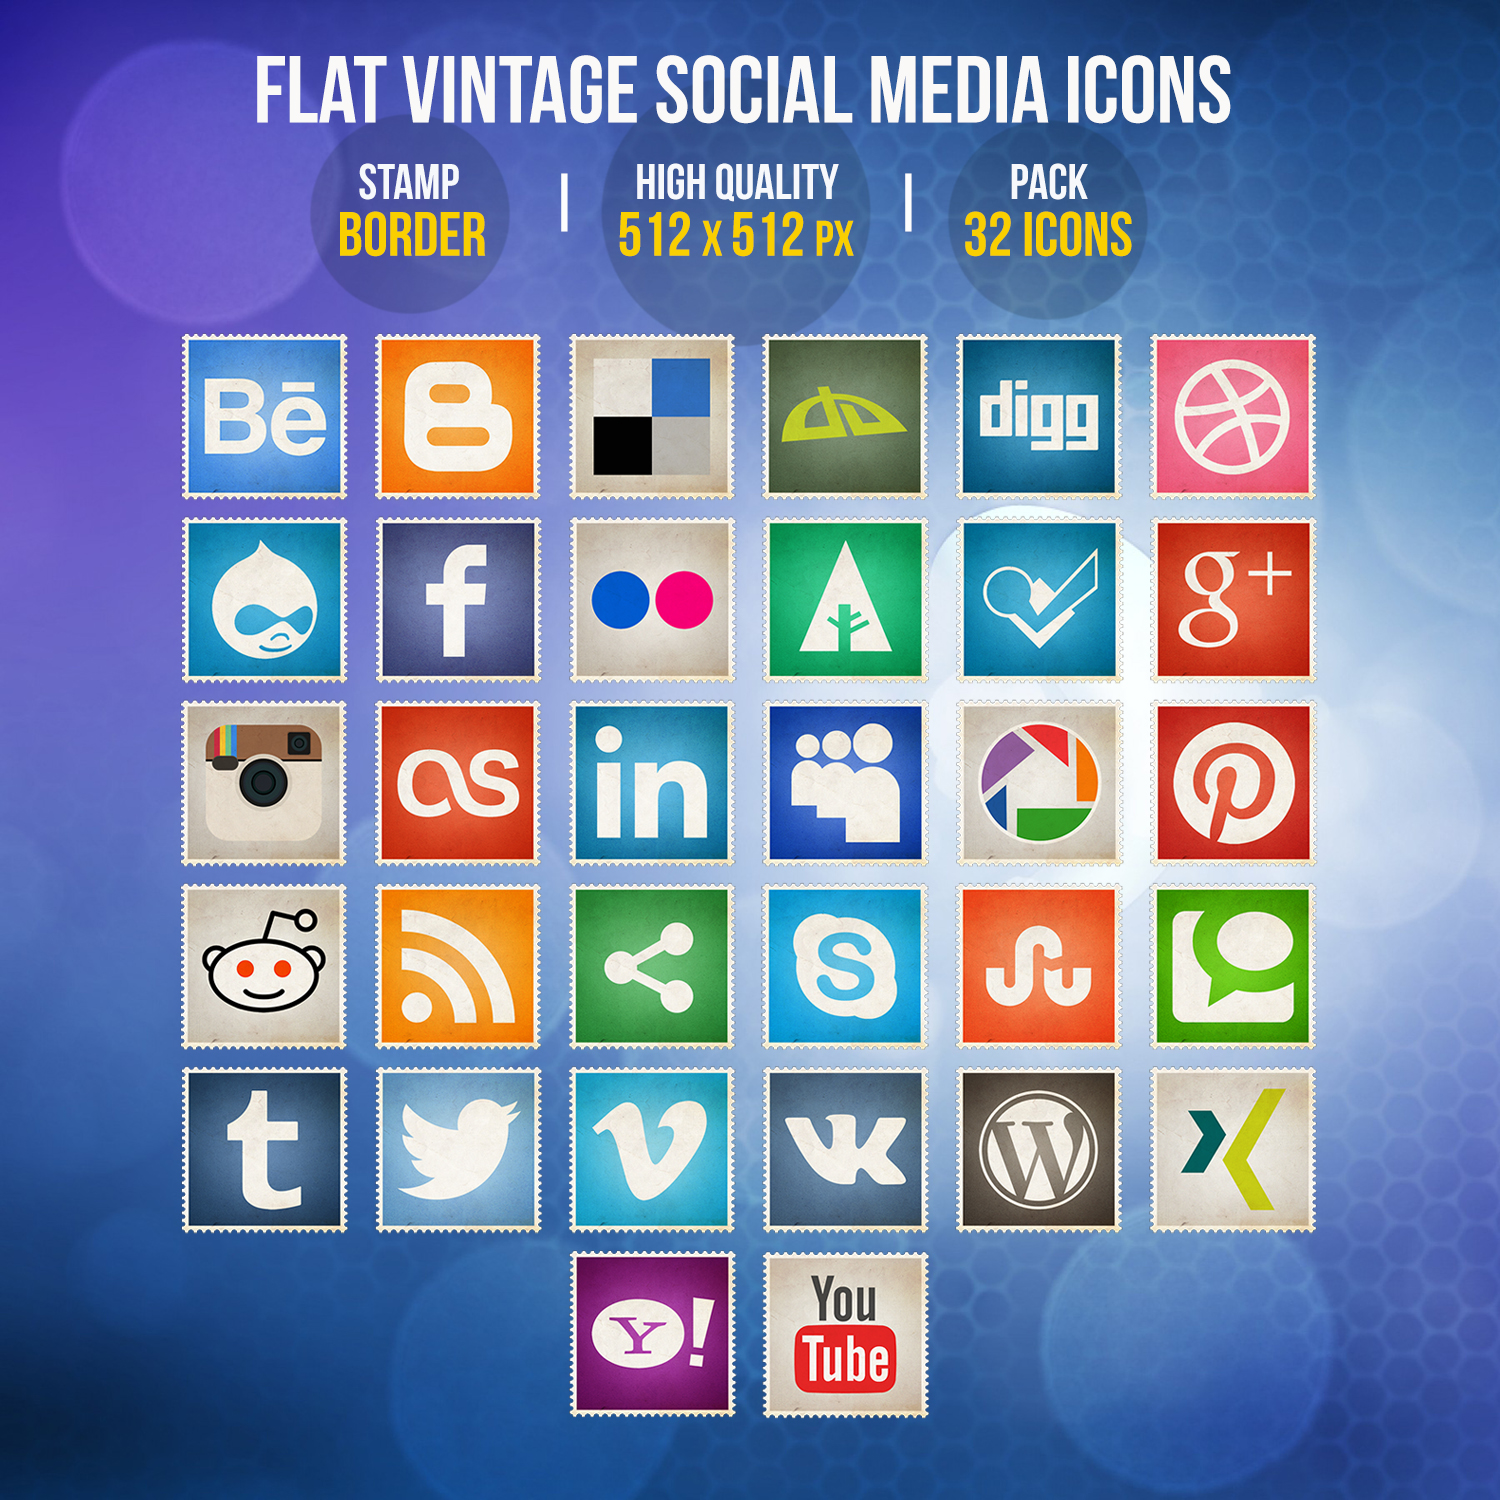 Flat Vintage Social Media Icons by limav